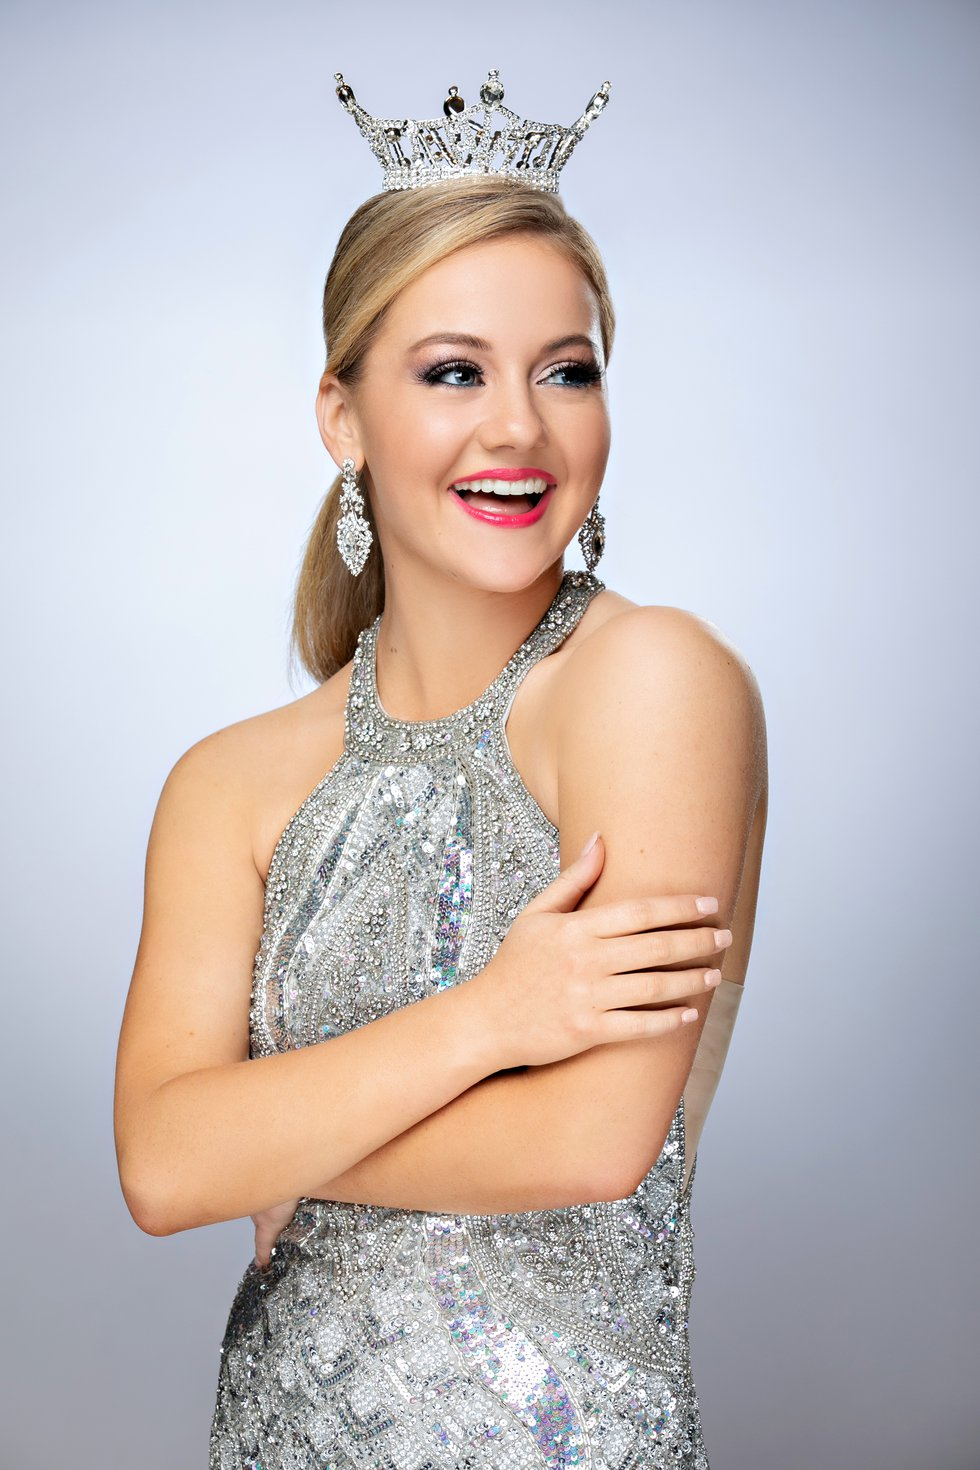 Allie Graves Official head shot for Miss. Texas' Outstanding Teen 2019